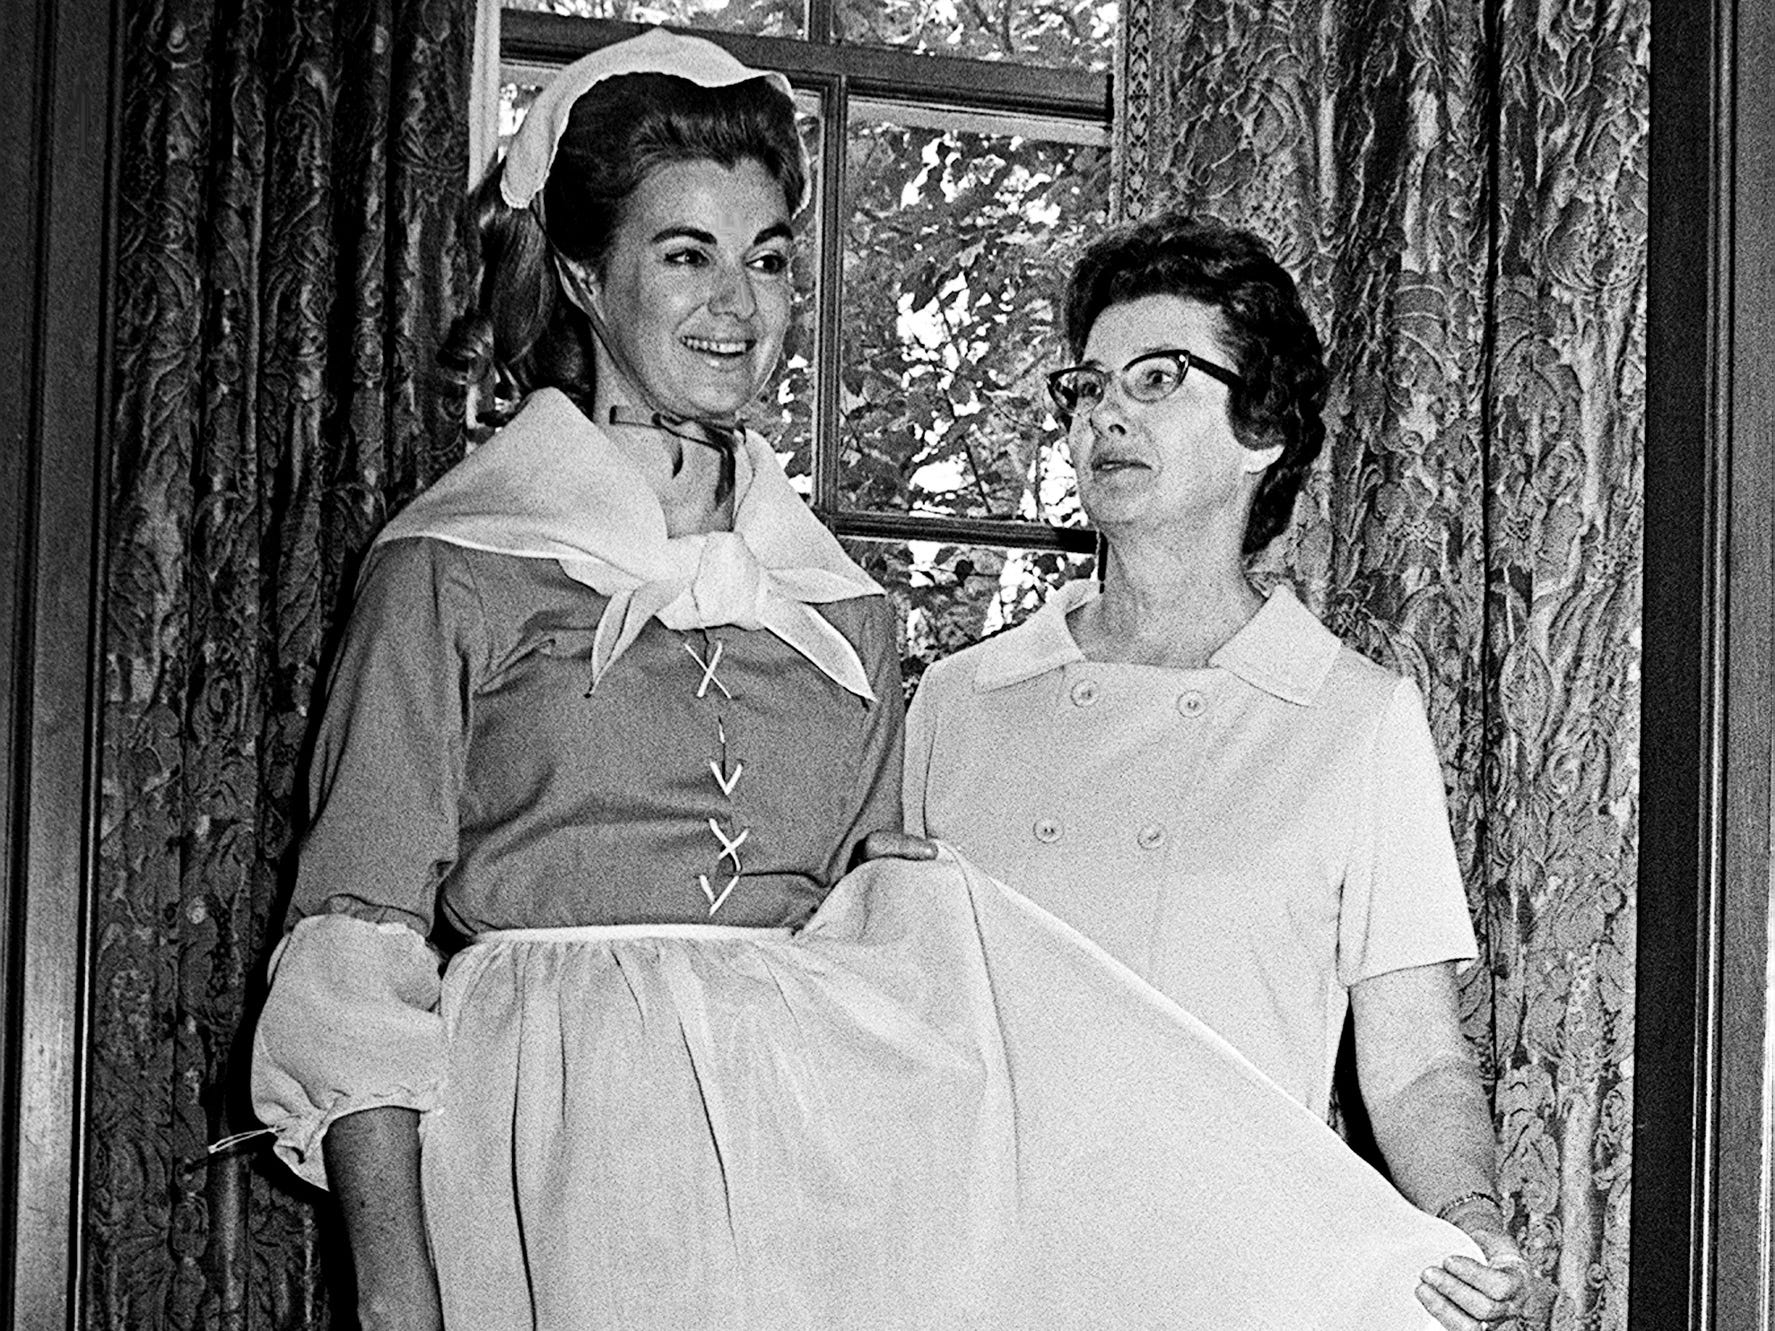 Plans for Christmas at Cheekwood are approaching the final stage Nov. 19, 1968 as the fourth annual Christmas Tree Festival will be held Dec. 7 through Dec. 20. Mrs. Peter Krenkel, left, of the Fleur de Lis garden club, will serve as hostess by the Moravian tree and Mrs. James Metcalfe is chairman of research on the education committee and writes the program.